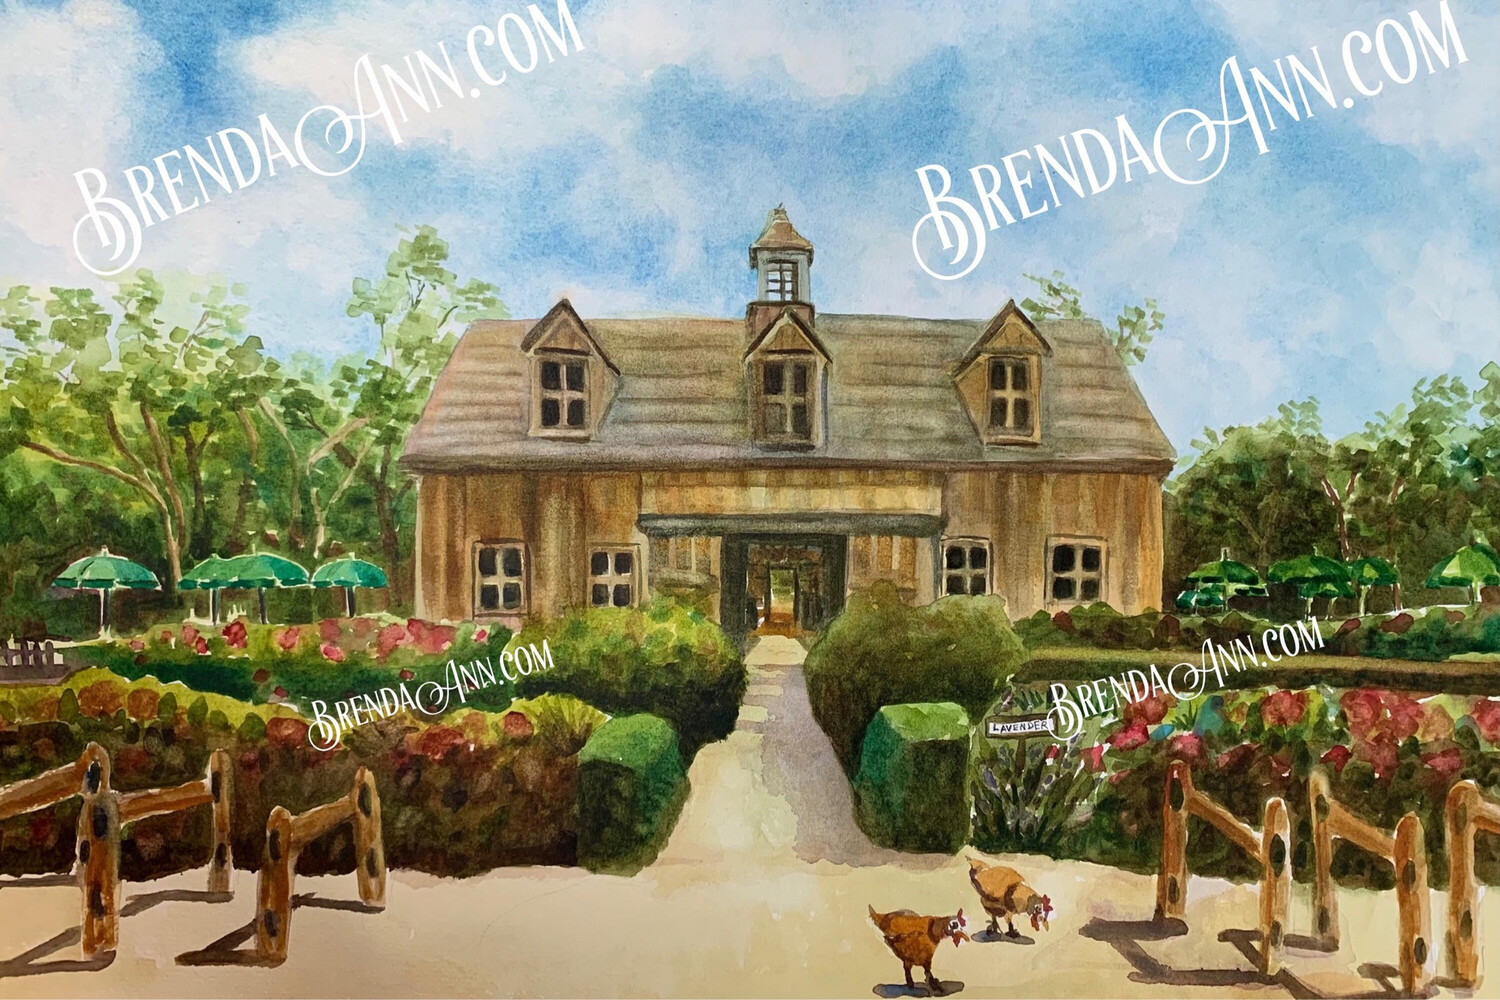 Beach Plum Farm in Cape May, NJ - Hand Signed Archival Watercolor Print